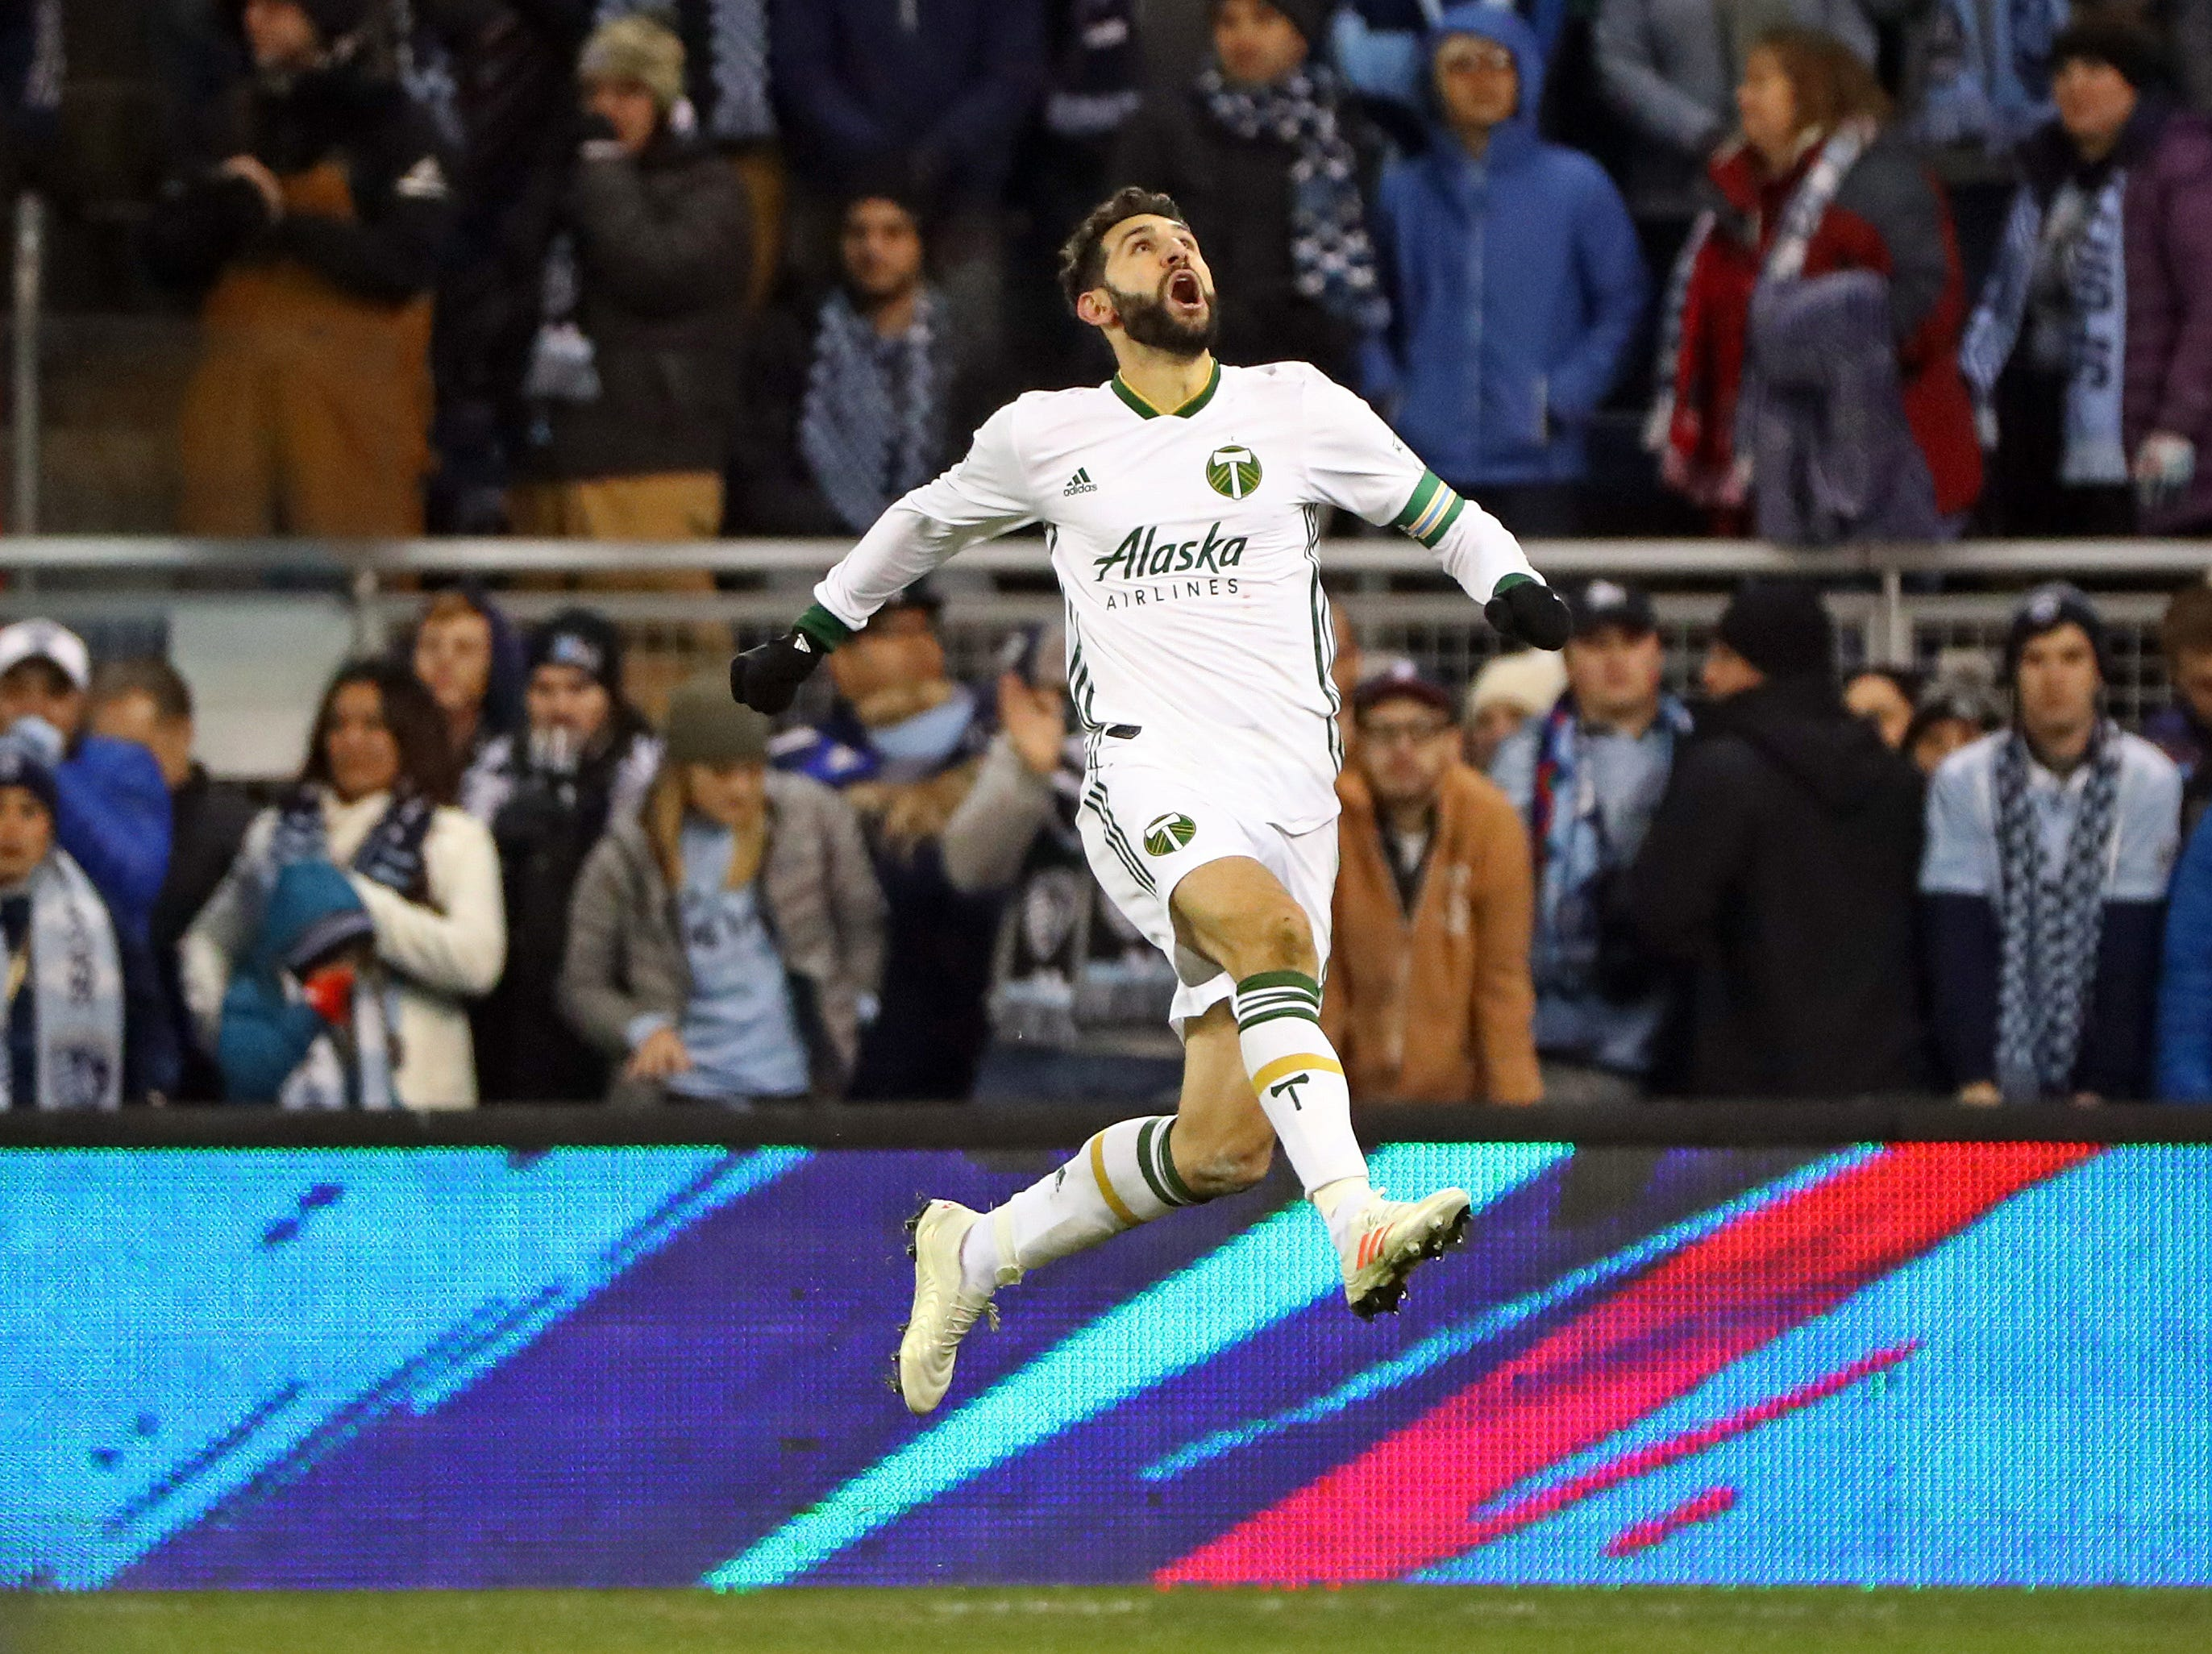 Nov 29, 2018; Kansas City, KS, USA; Portland Timbers midfielder Diego Valeri (8) celebrates after scoring a goal against the Sporting Kansas City during the second half in the second leg of the MLS Western Conference Championship at Children's Mercy Park. Mandatory Credit: Jay Biggerstaff-USA TODAY Sports